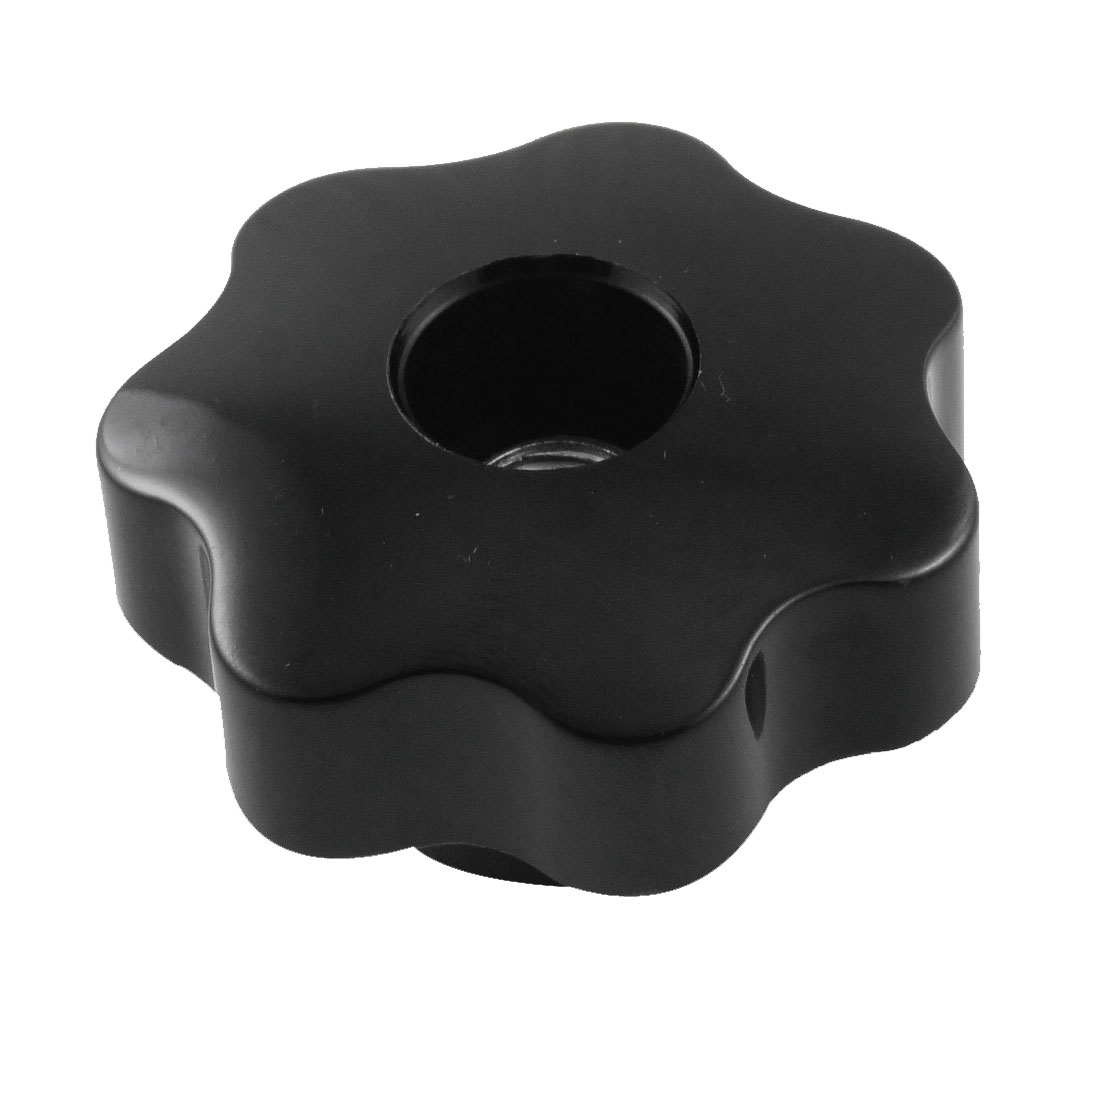 50mm Dia Black Plastic Star Head Metal Clamping Knob Exqnp